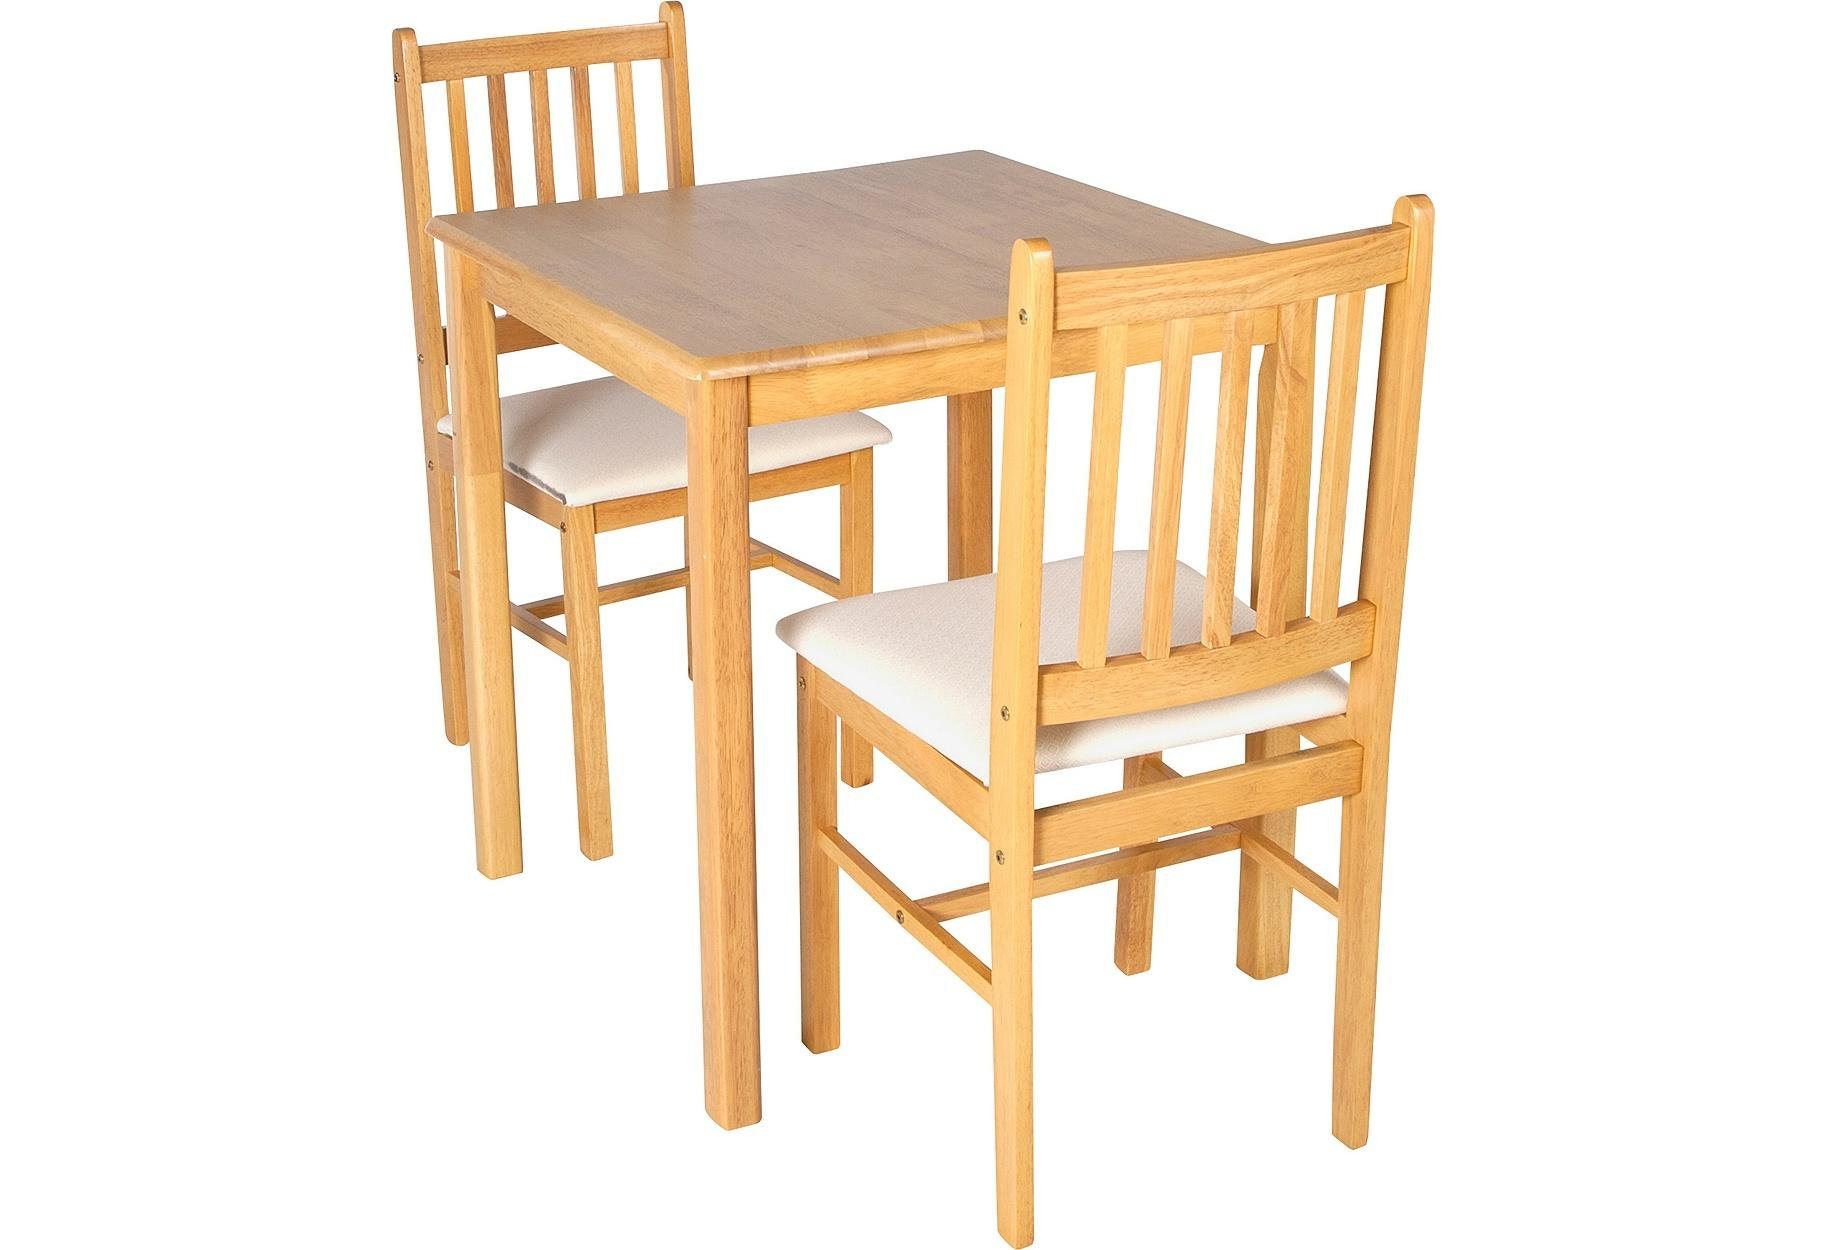 Buy HOME Kendall Square Solid Wood Table   Chairs - Cream at